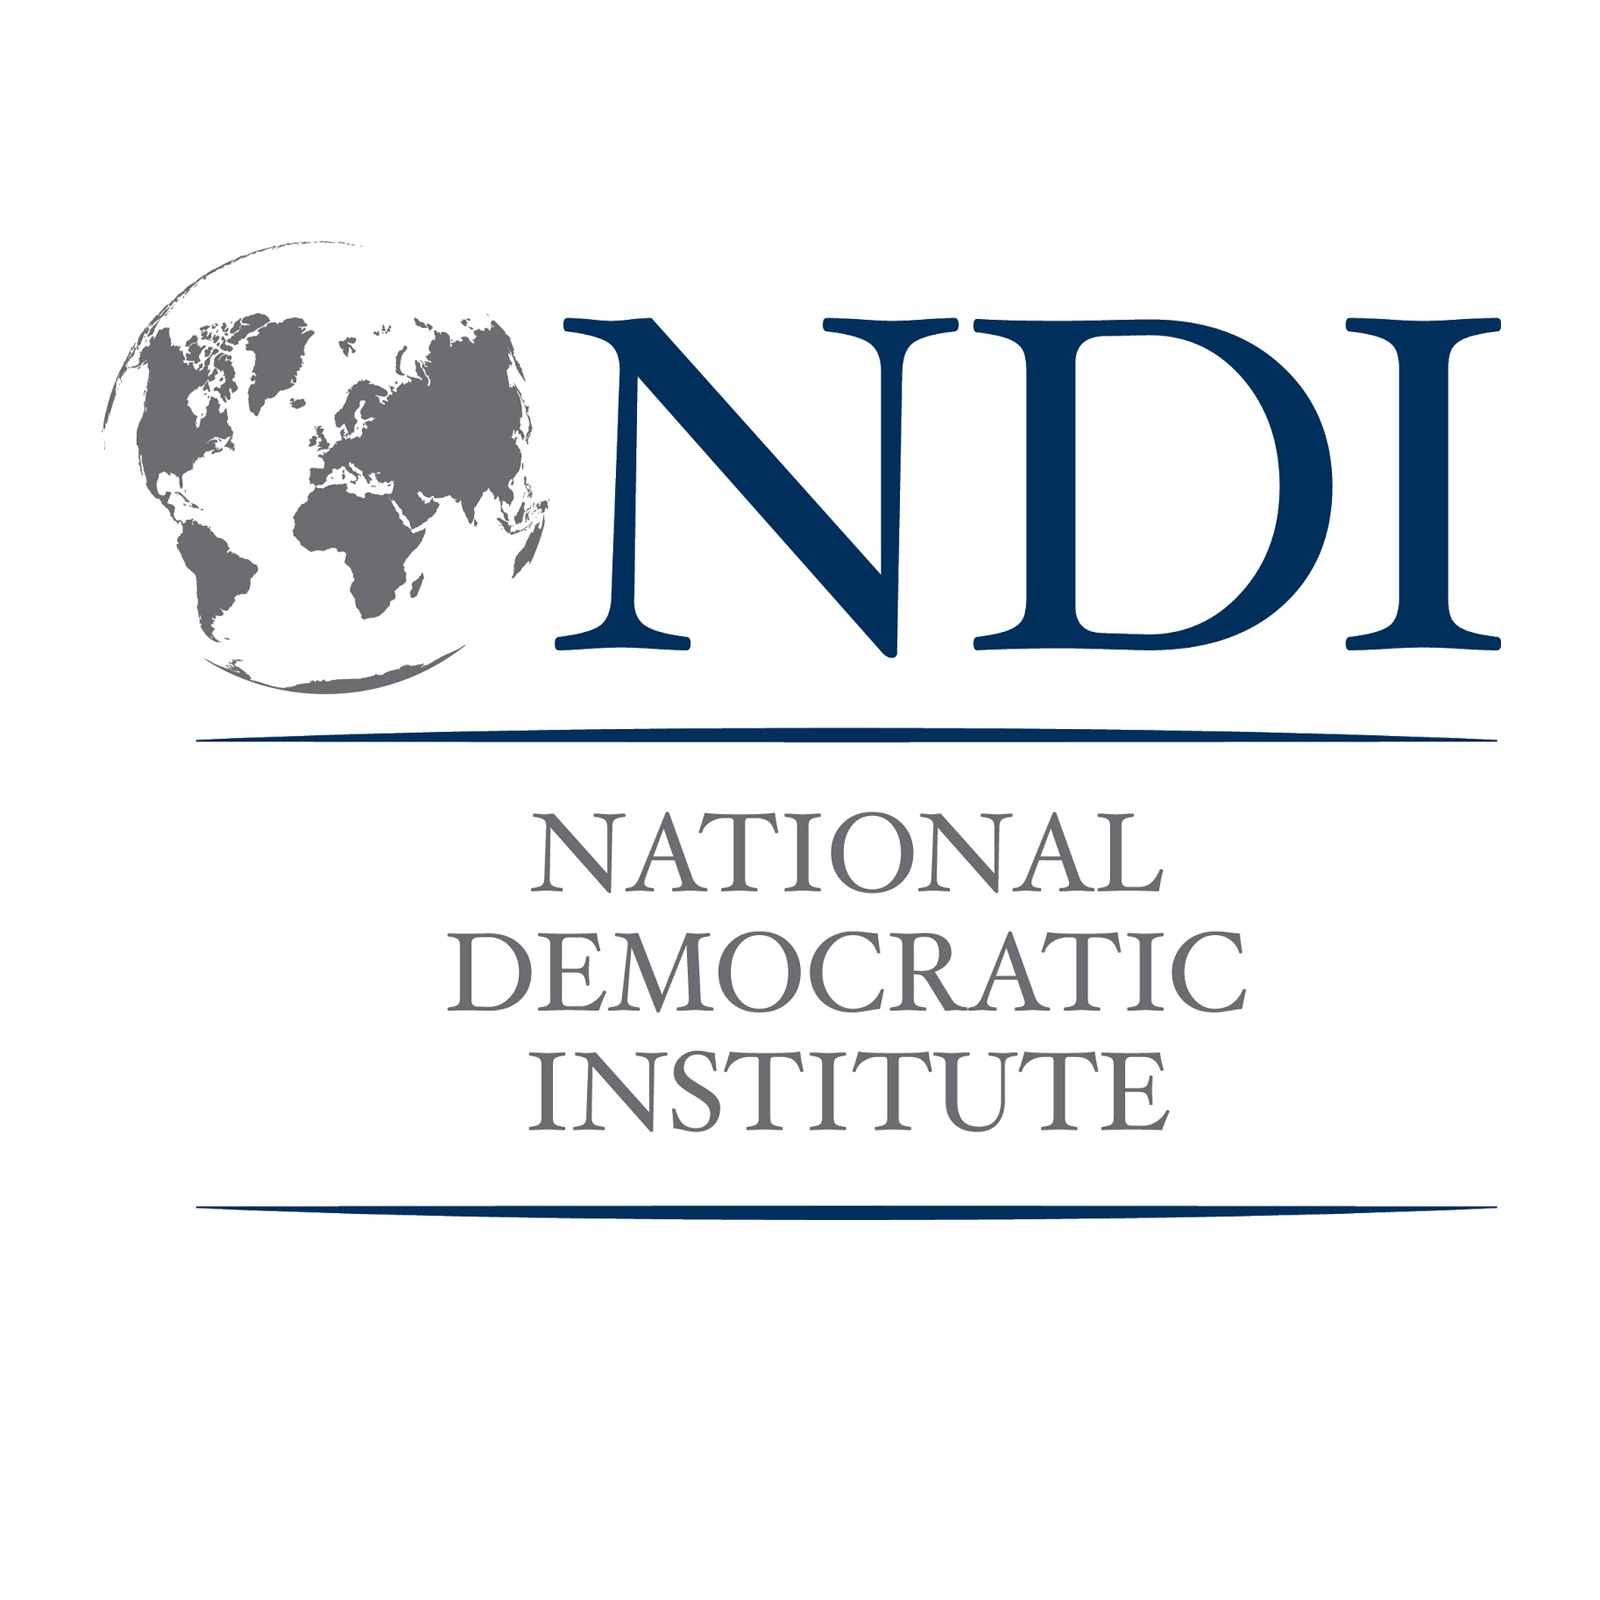 NDI: One in three people blame Ivanov and VMRO-DPMNE on the political crisis